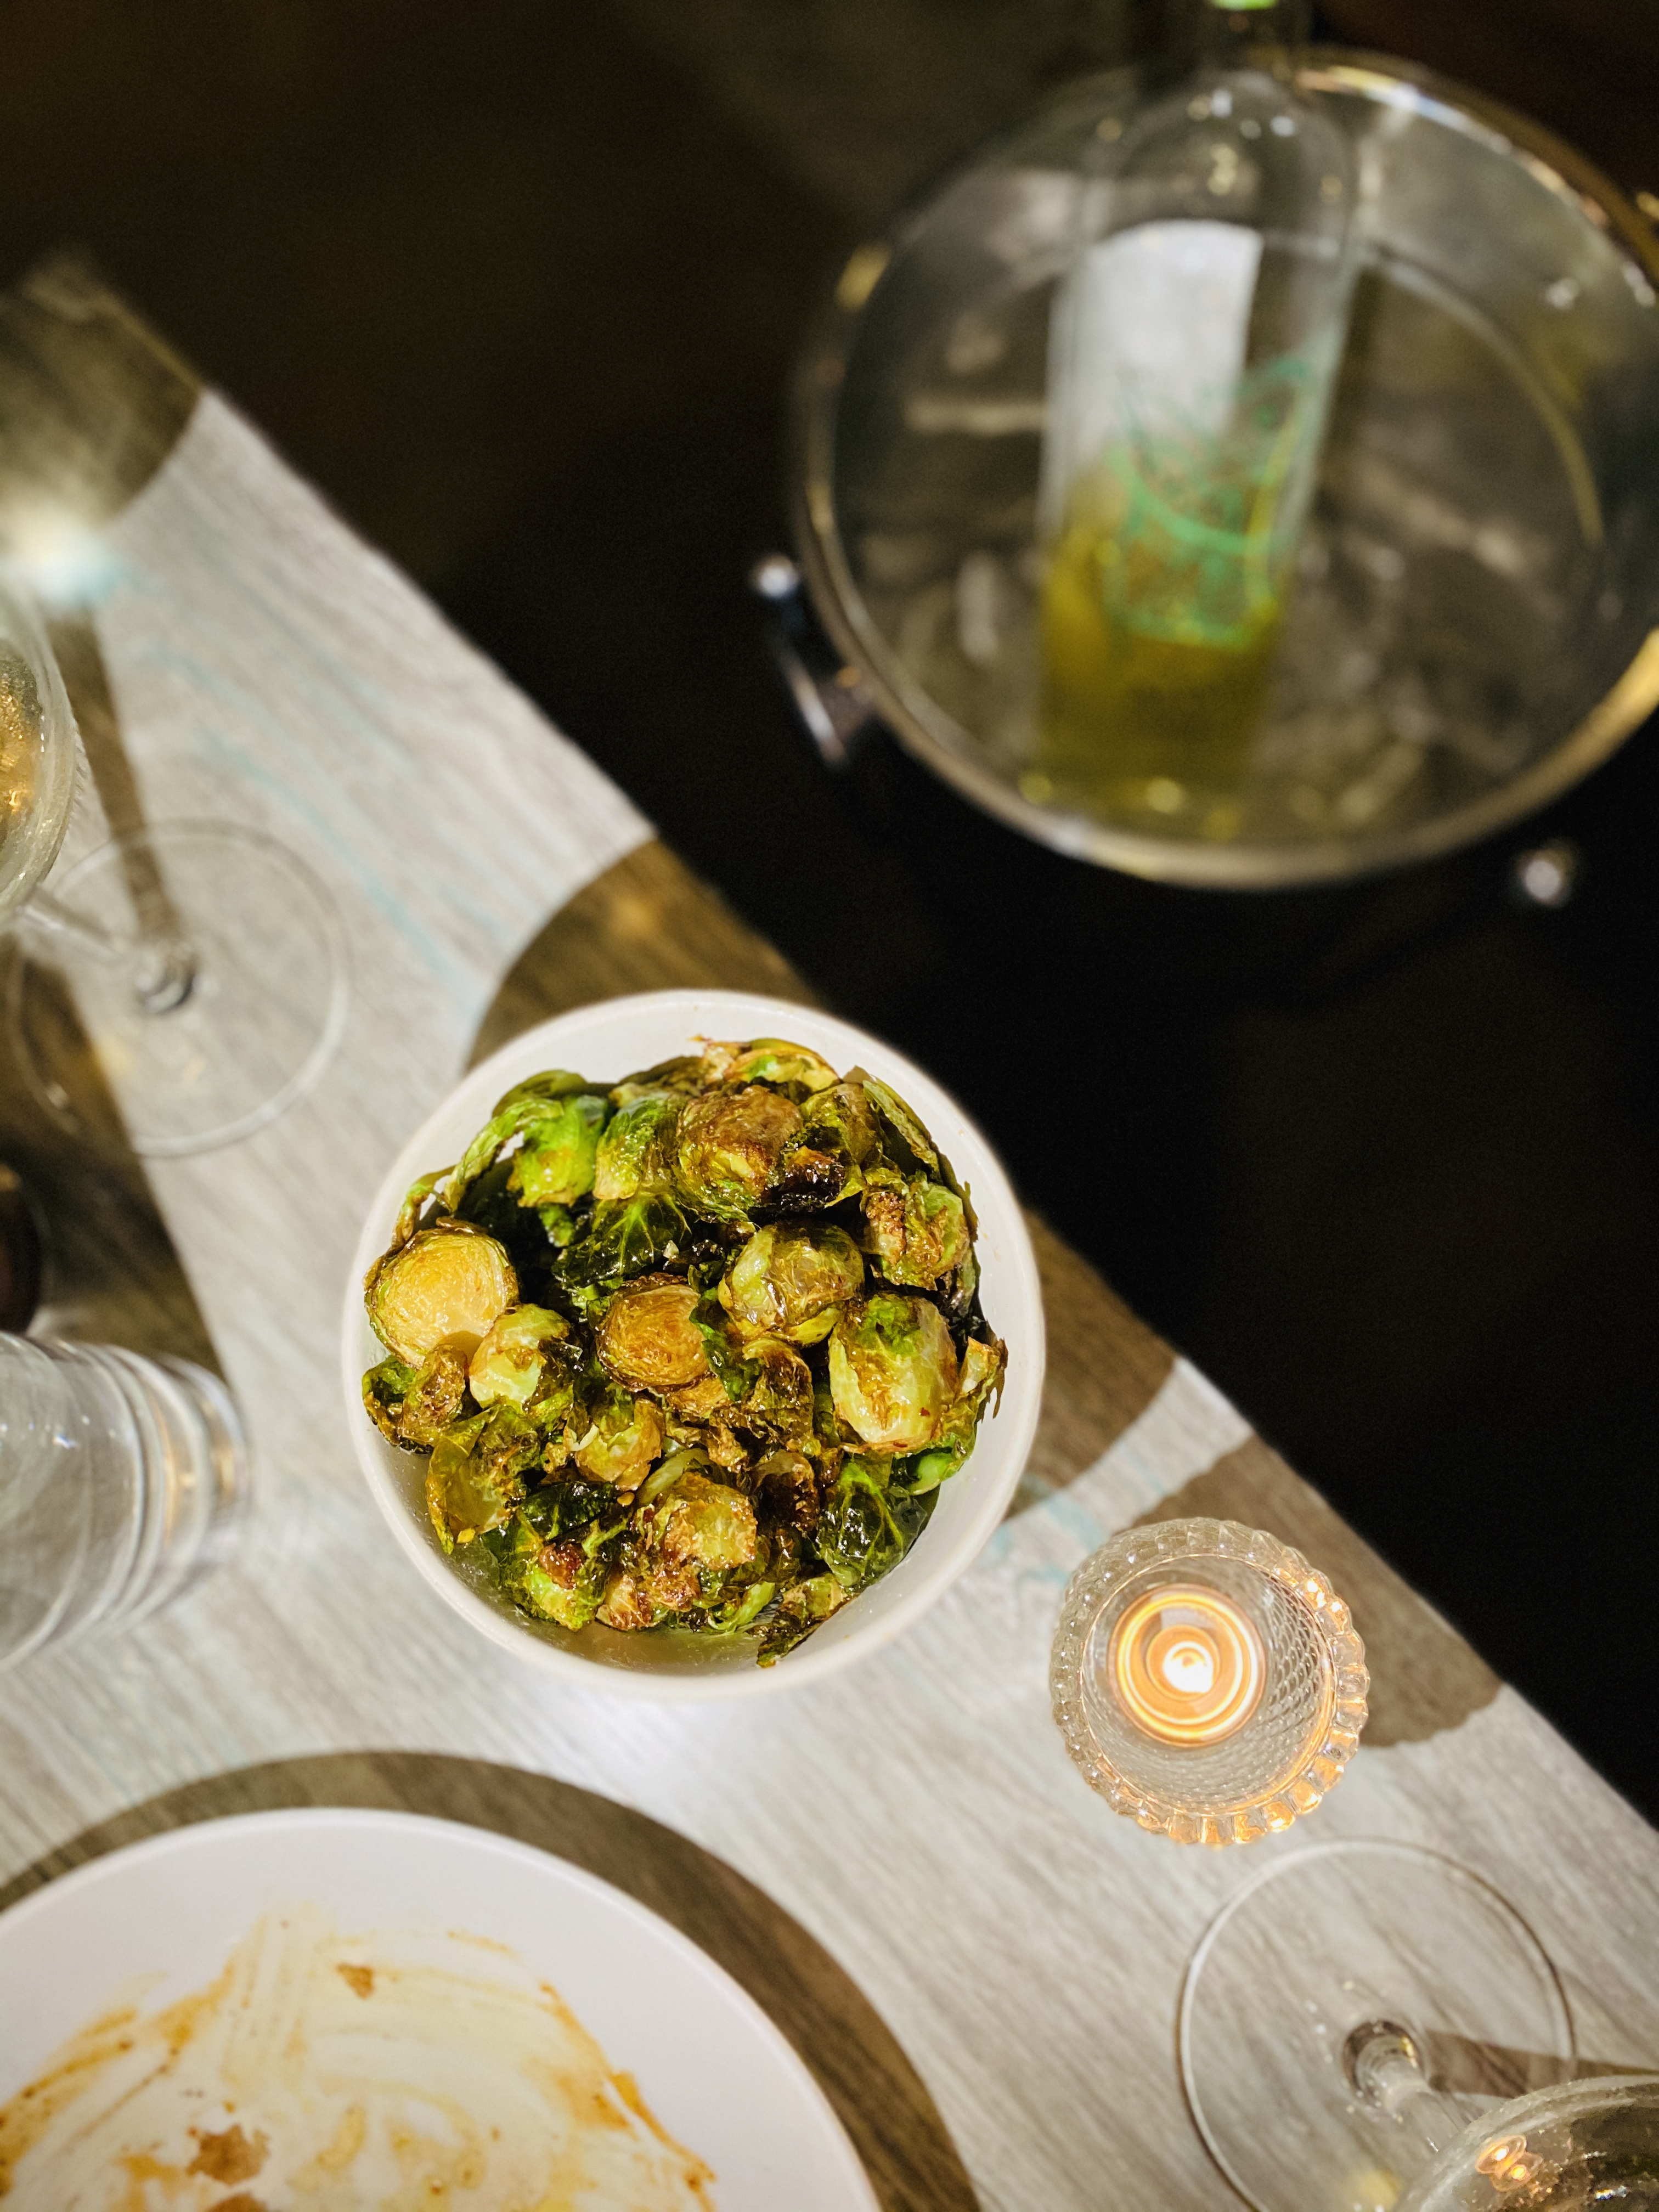 Brussels sprouts from Prather's